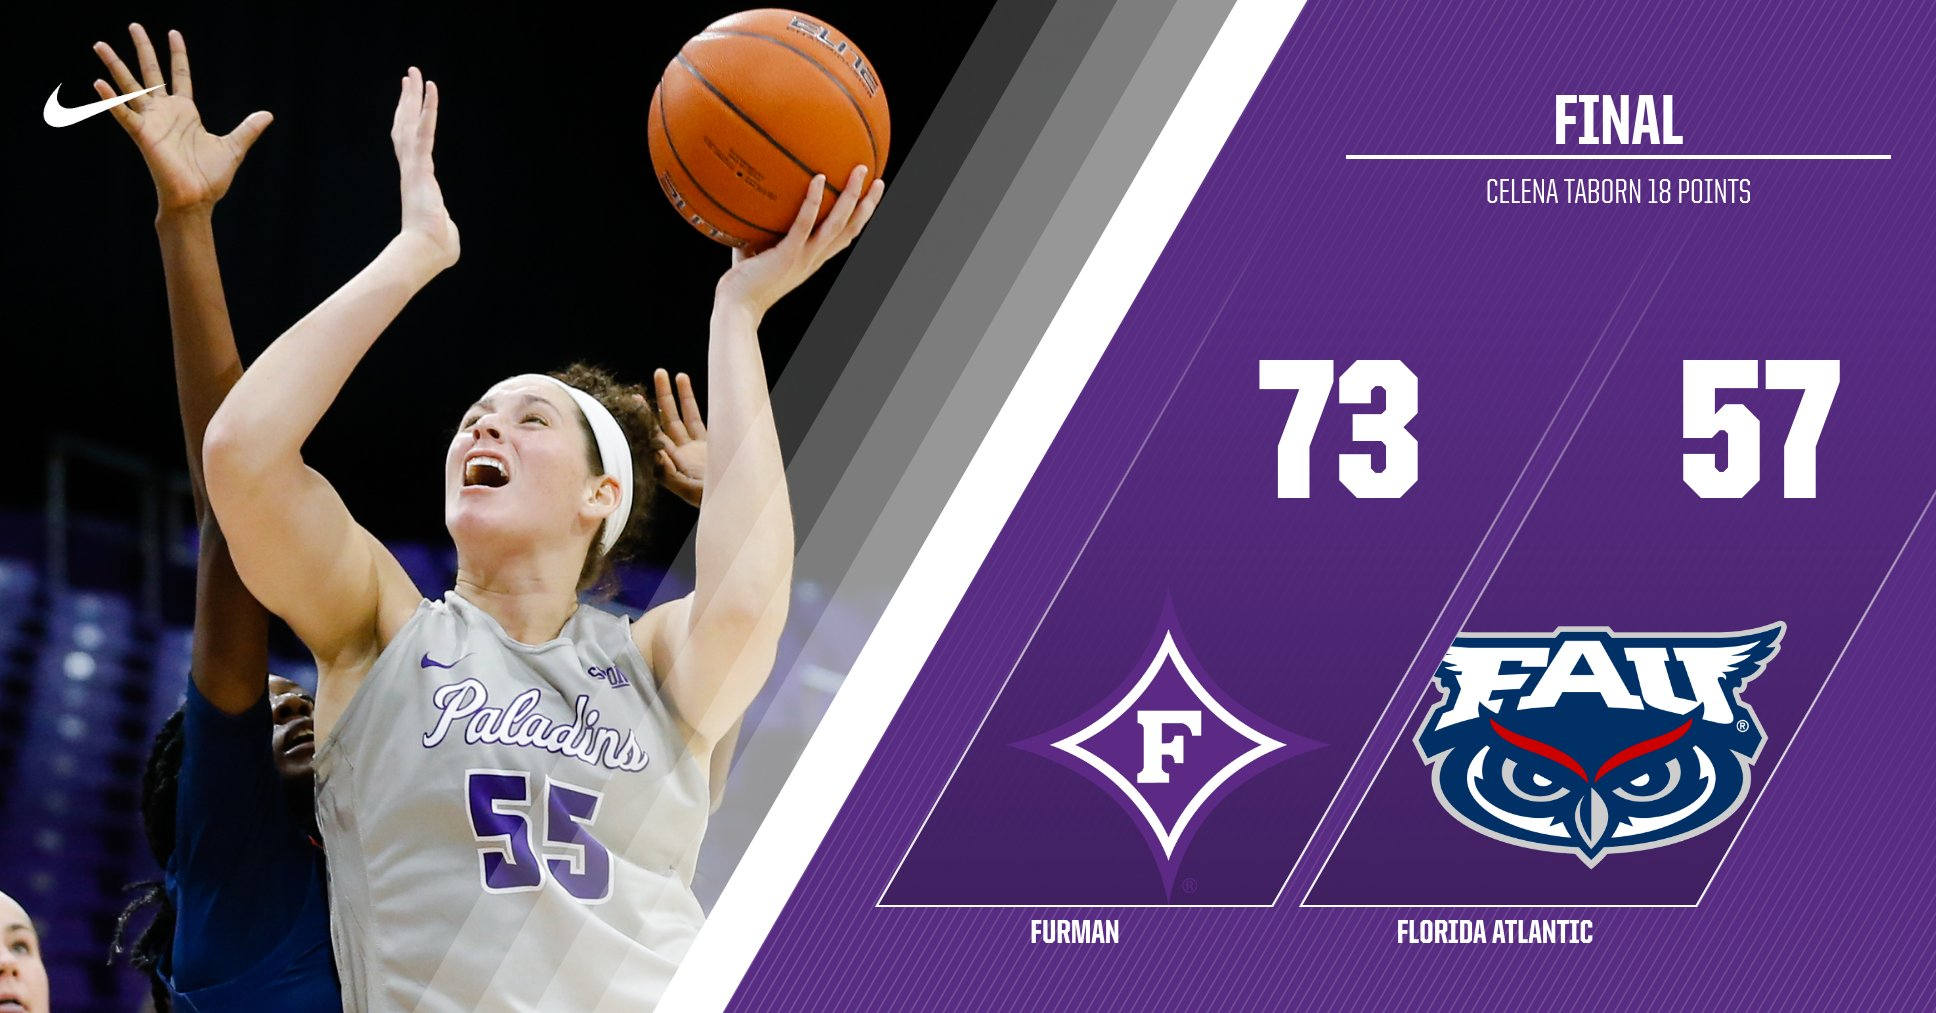 Strong Start Helps Furman Cruise Past Florida Atlantic, 73-57